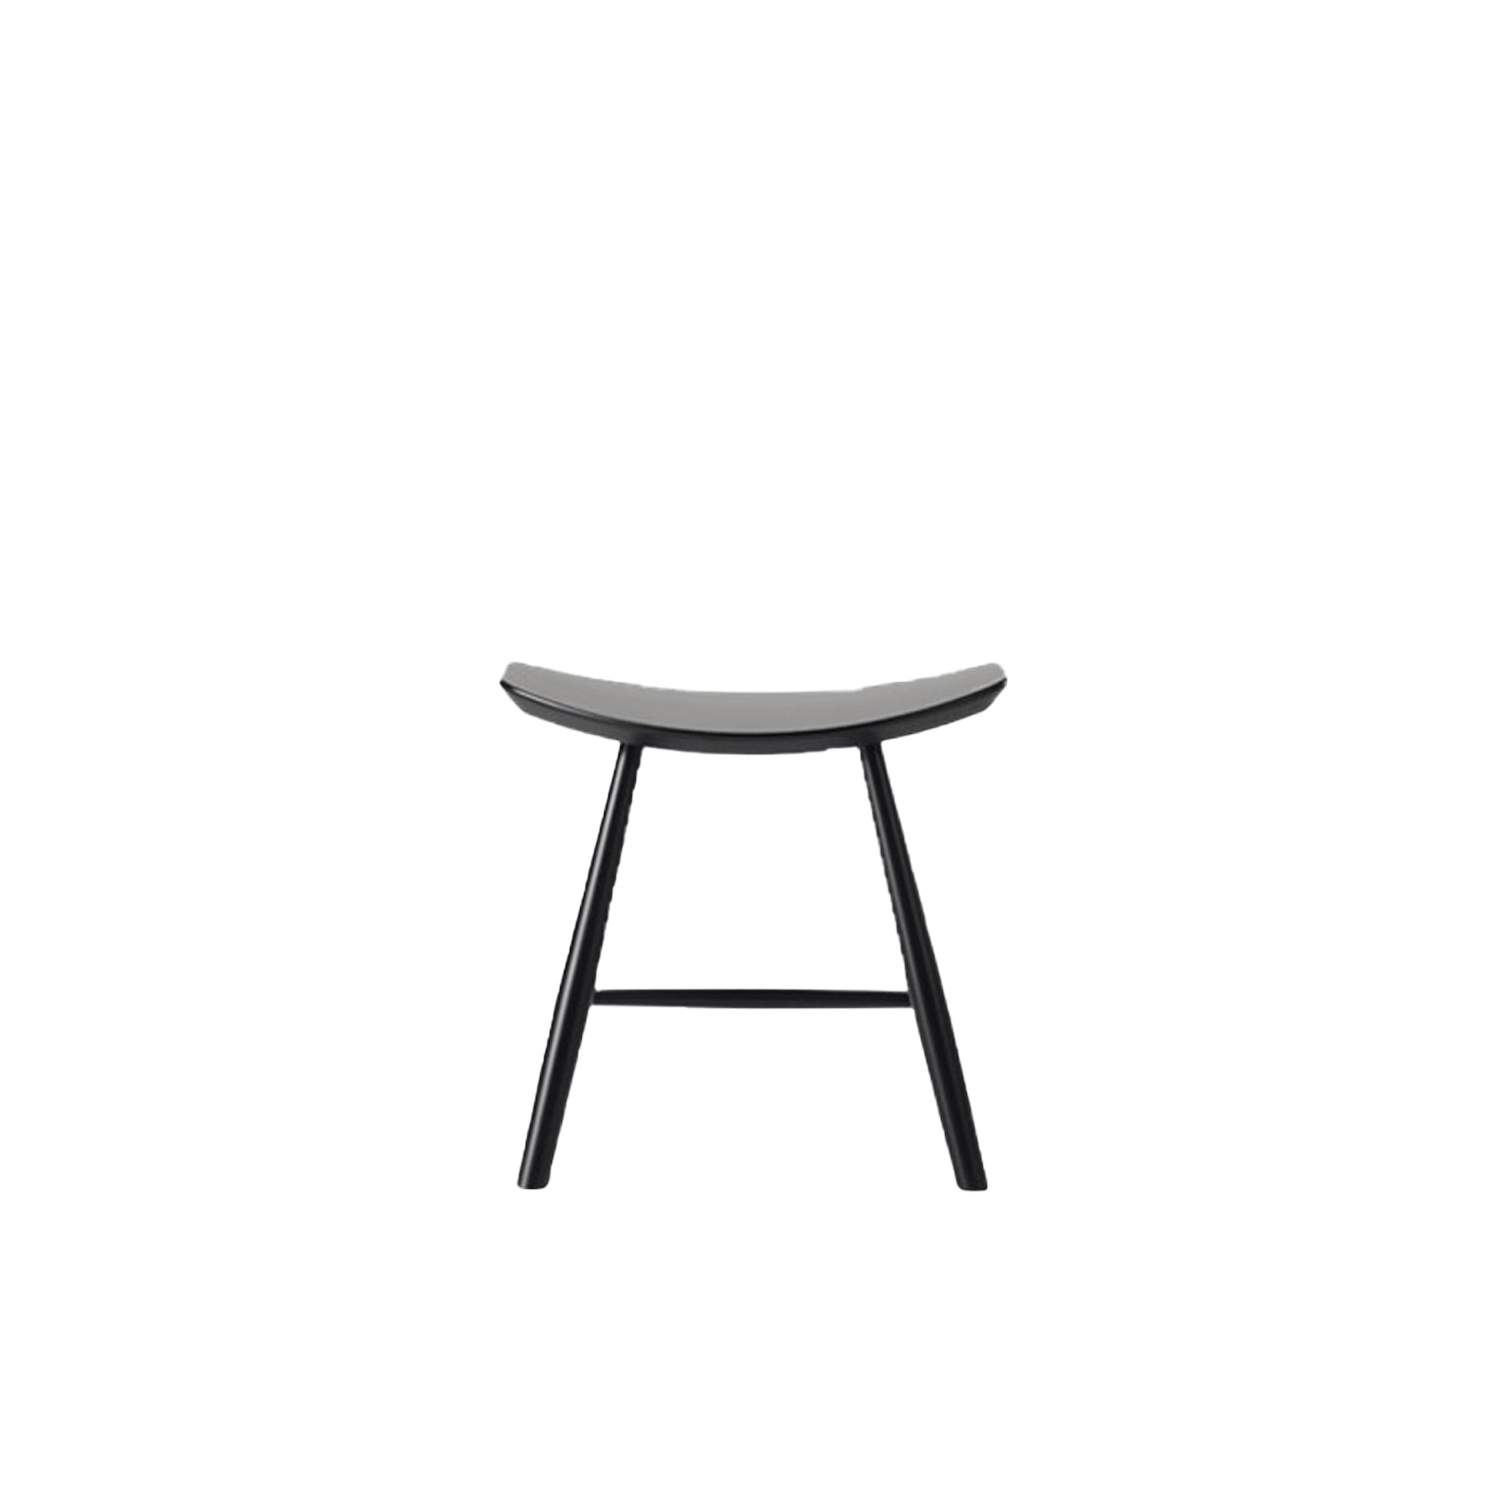 J63 Stool - A classic wooden stool that can be used together with the J64 chair, next to a bed or as an occasional seat for guests in a smaller kitchen or living room. | Matter of Stuff